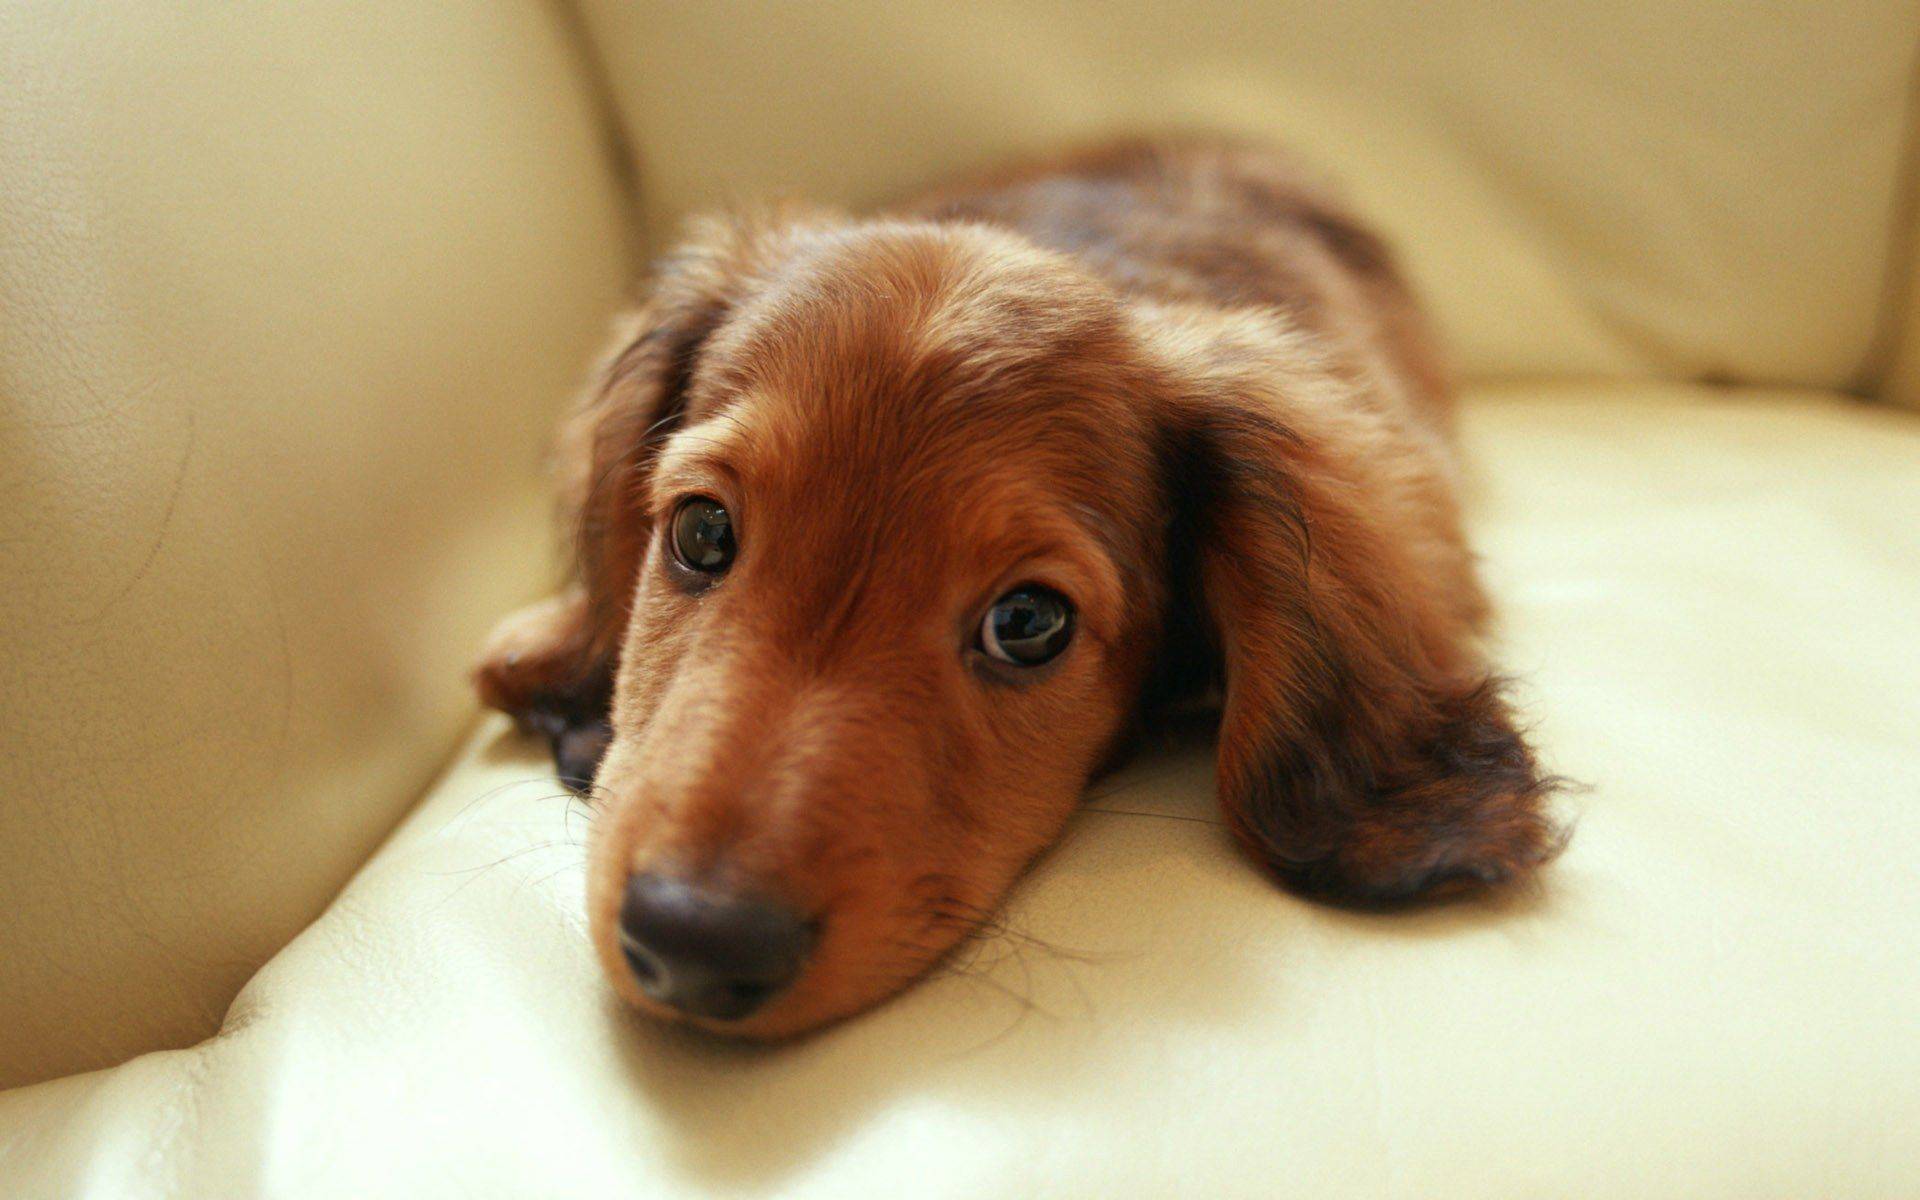 Dachshund Puppies Miniature Dachshund Puppies Wallpapers Puppy